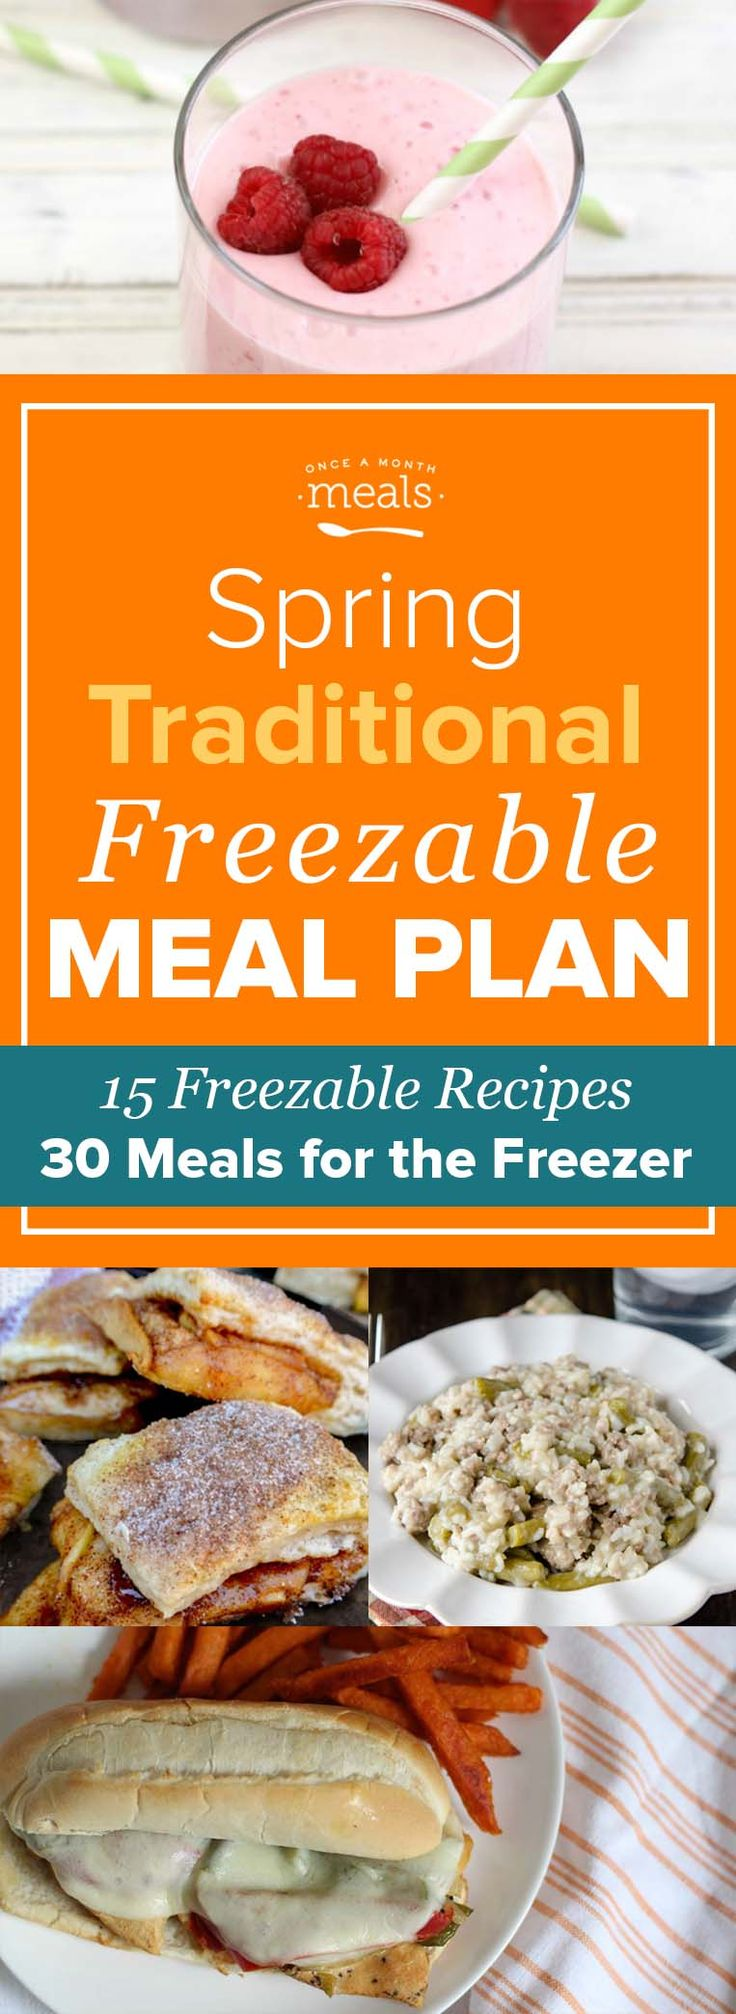 This Spring Traditional Freezer Menu will help you stock up on delicious and easy freezer meals all while simplifying your meal planning and prep! via @onceamonthmeals